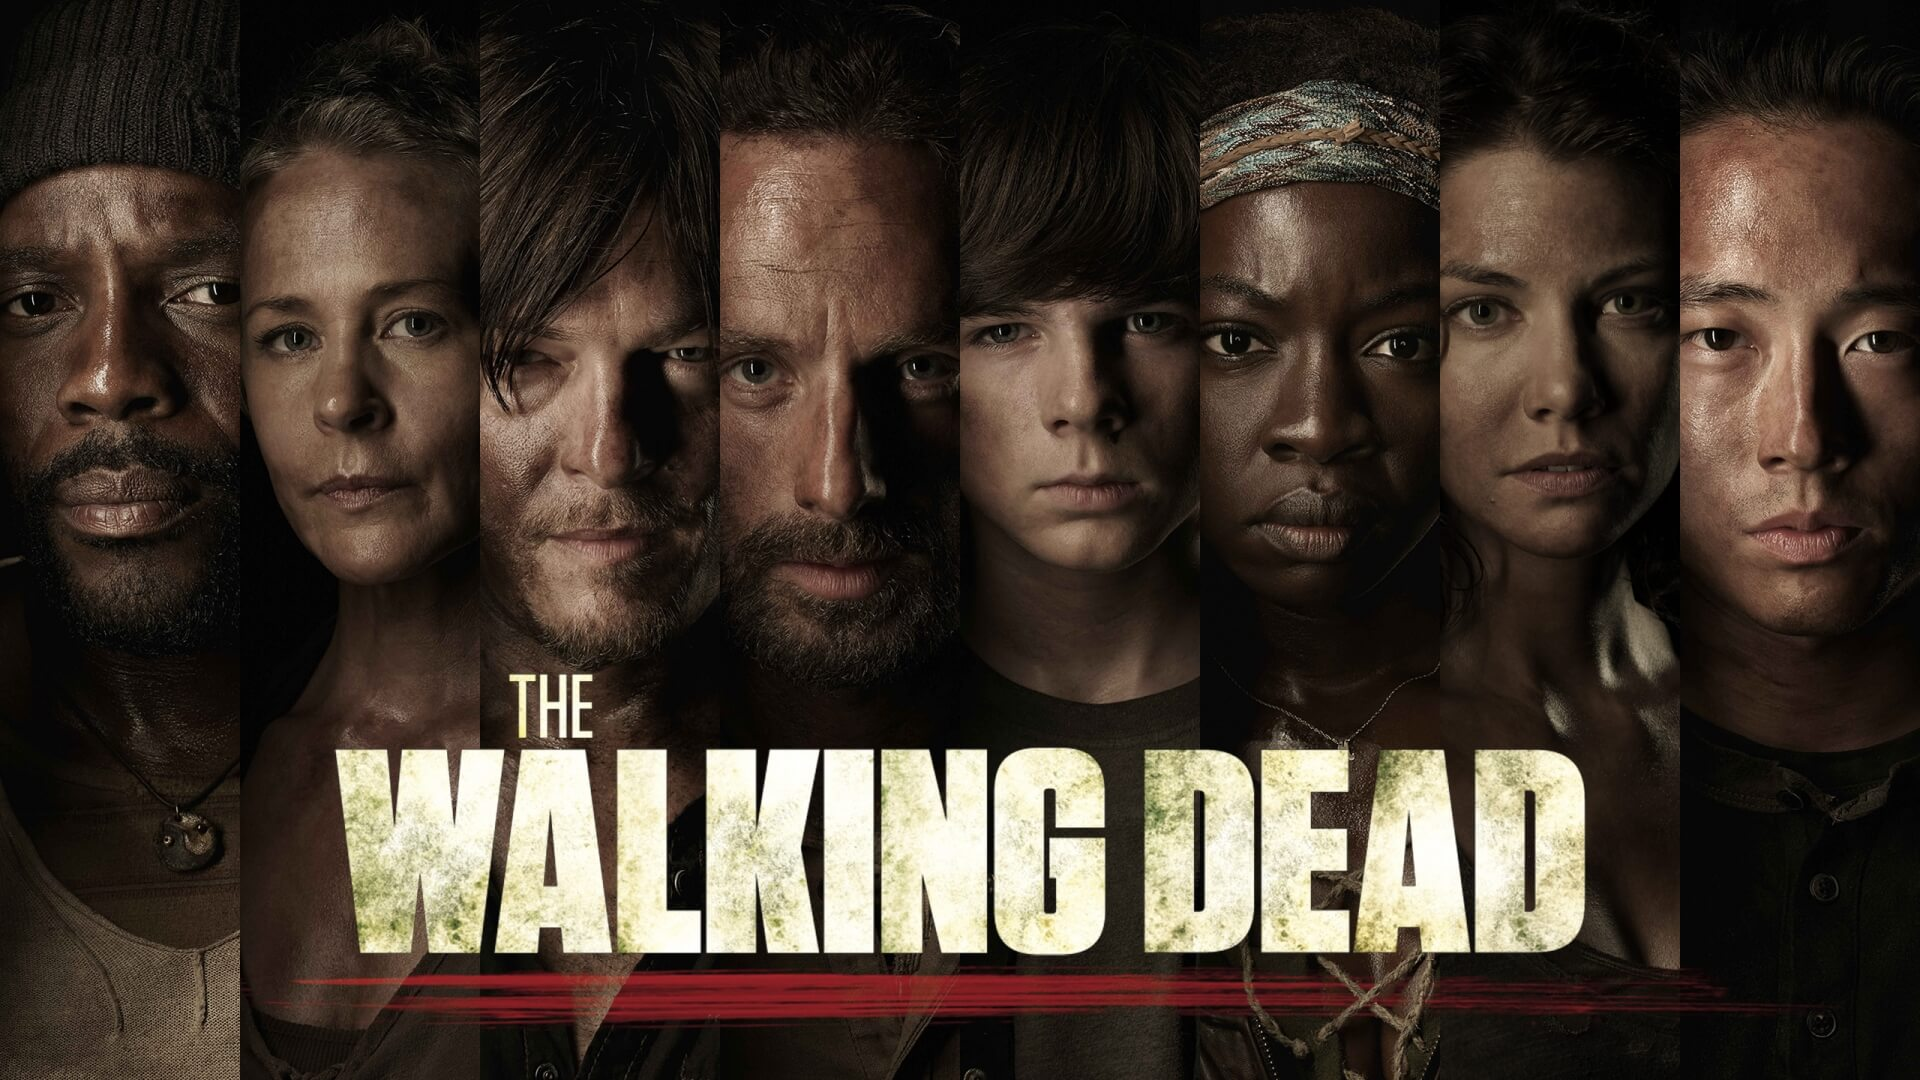 The Walking Dead Wallpaper Background Hd Wallpaper Background